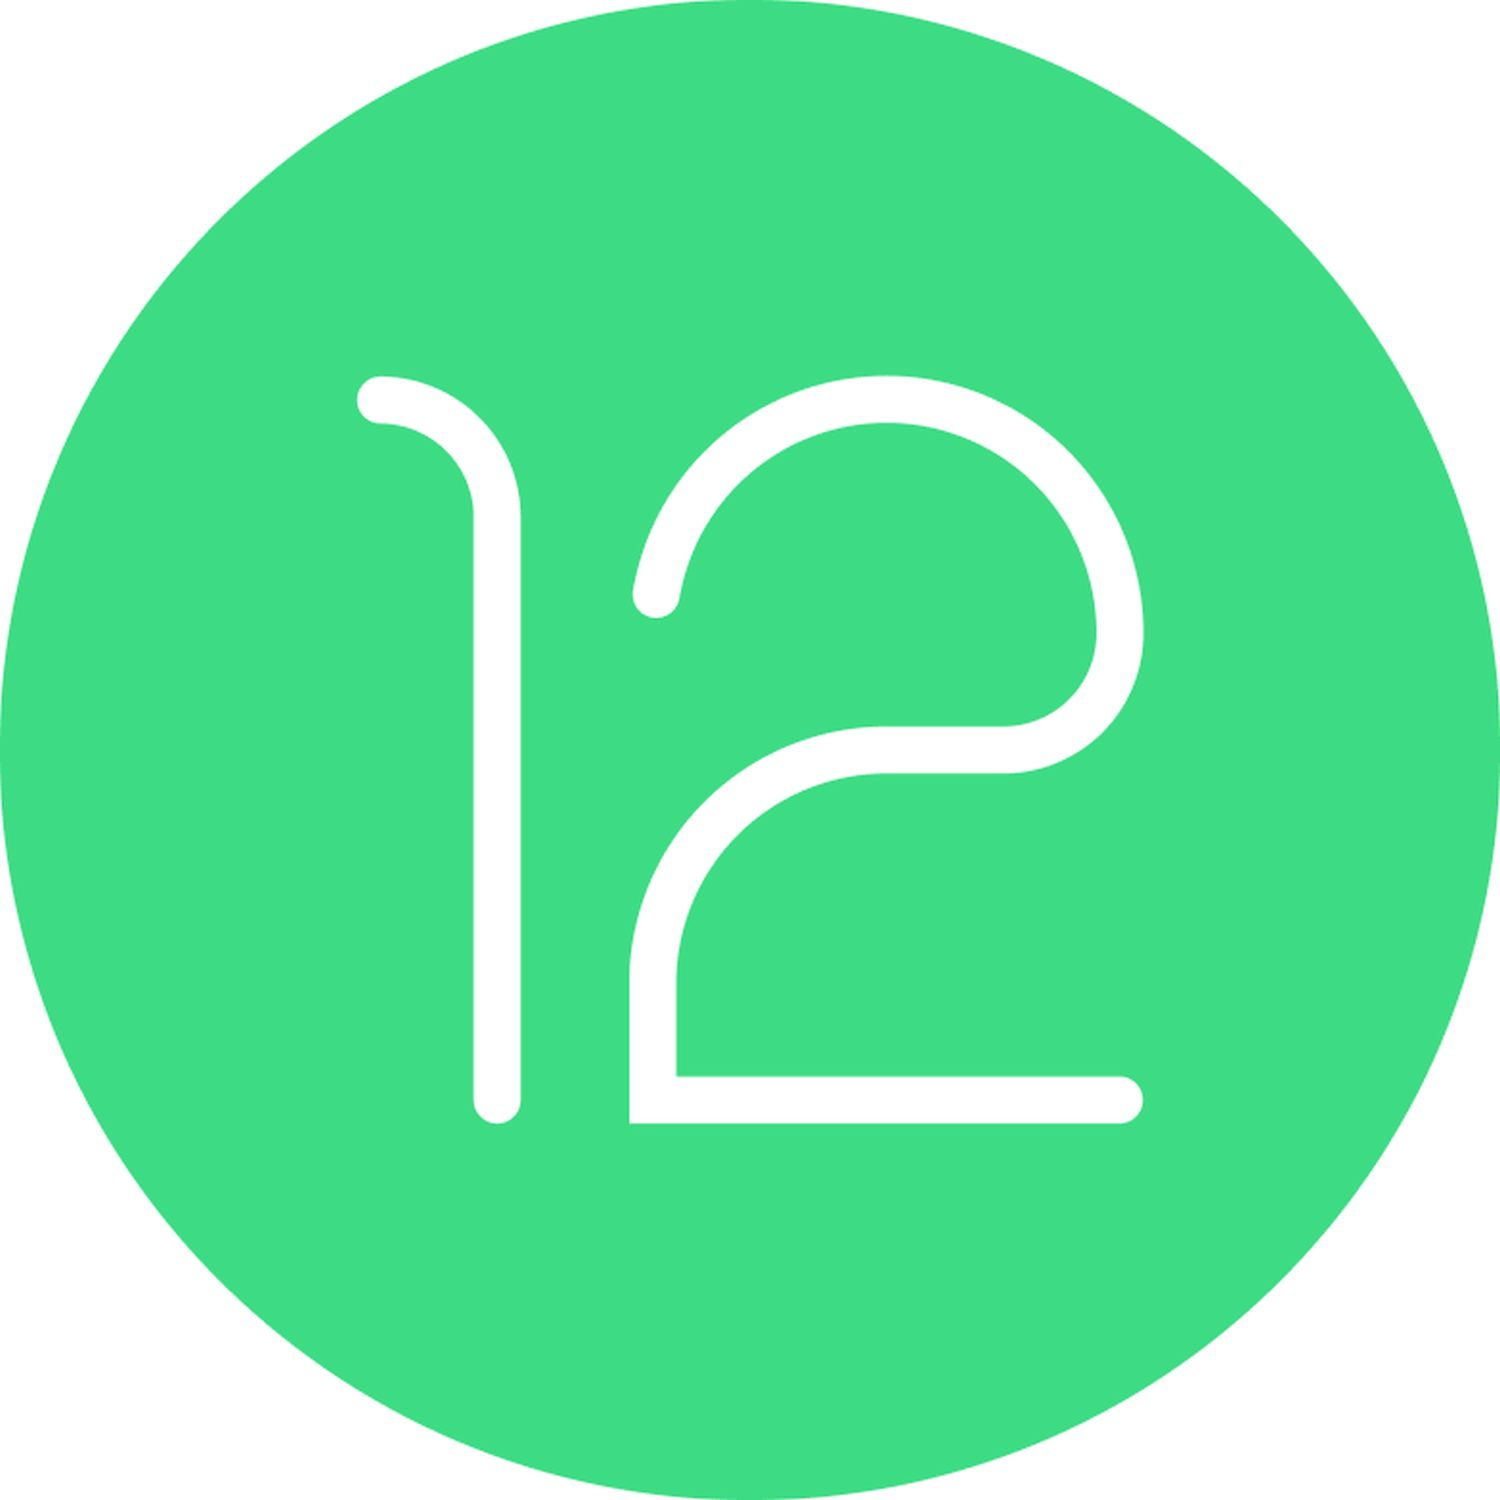 android 12 logo